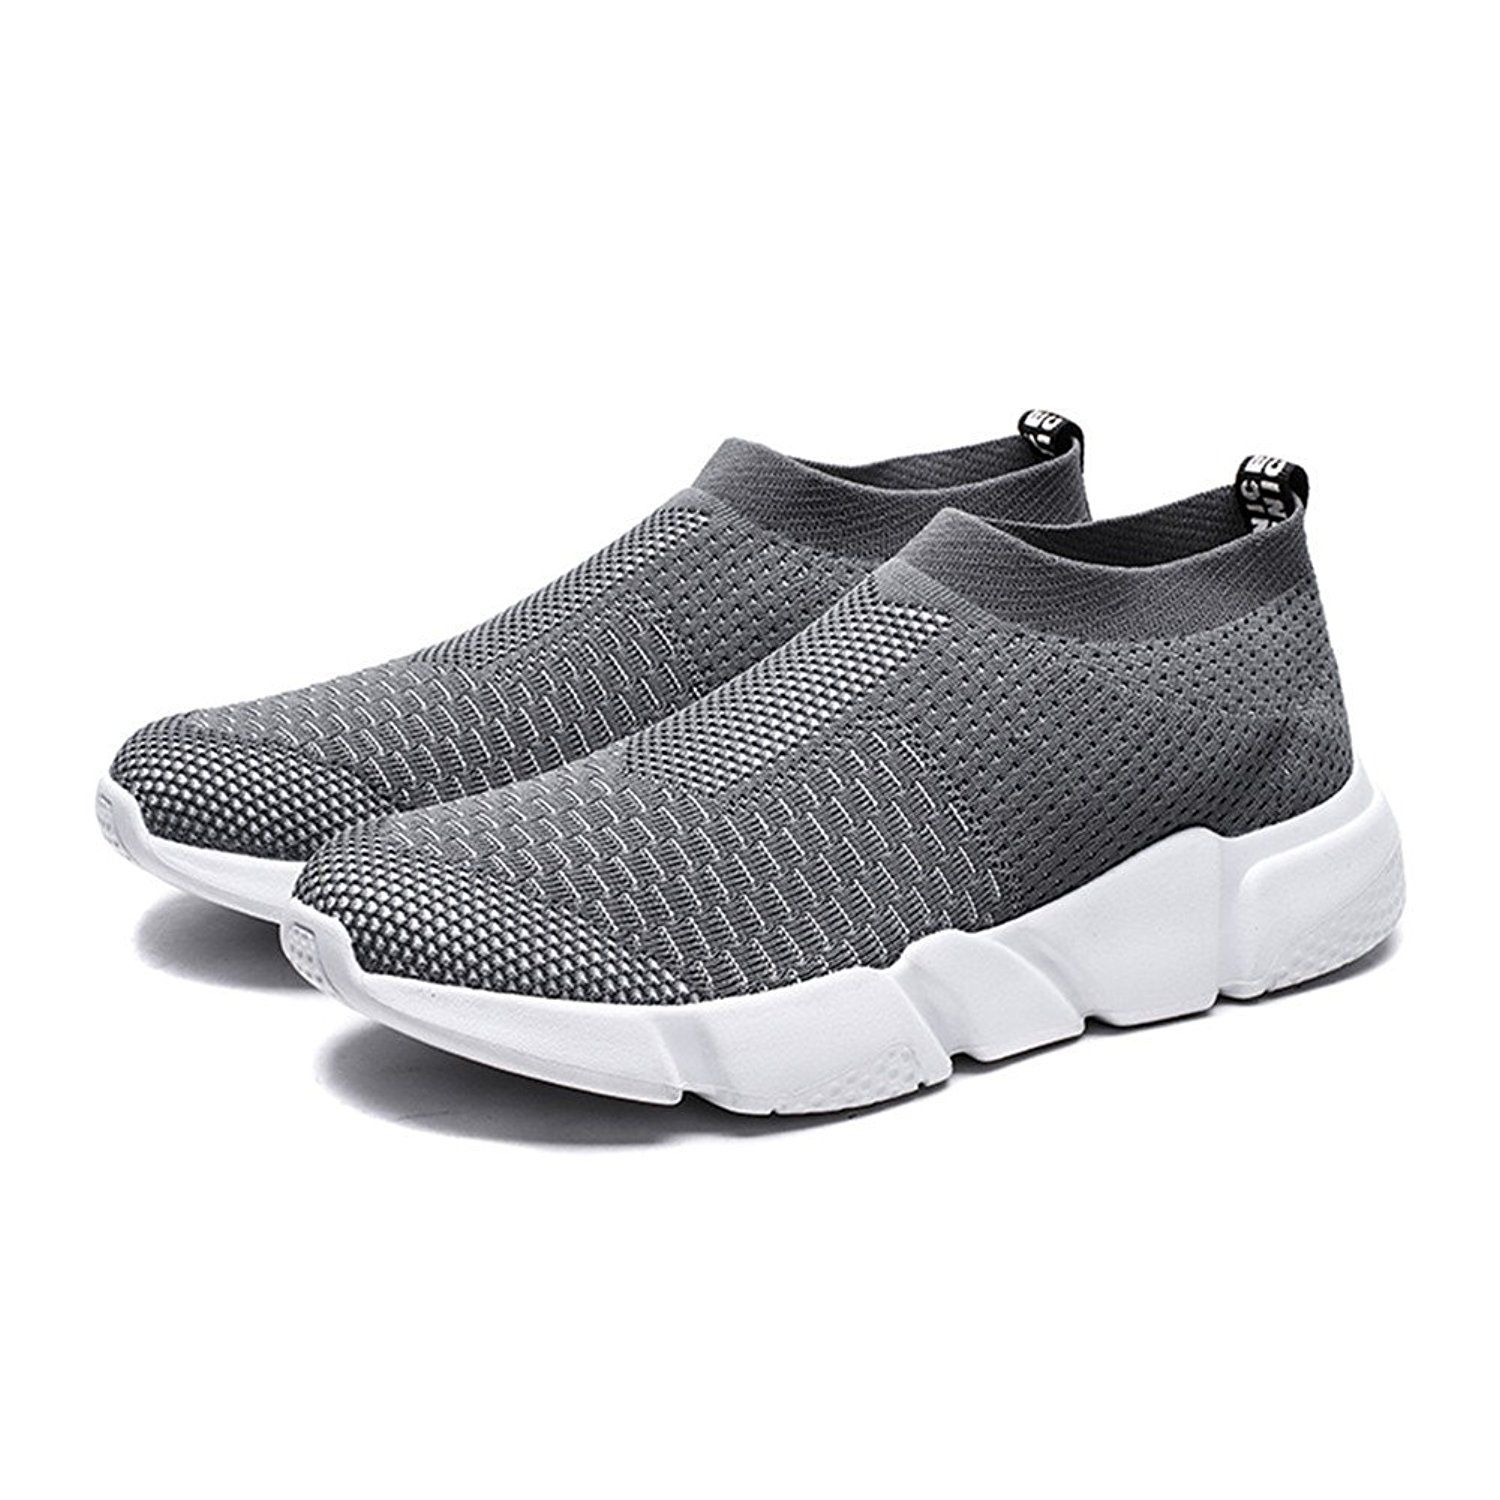 Fashion Men's Casual Slip On Shoe Breathable Sport Sneakers